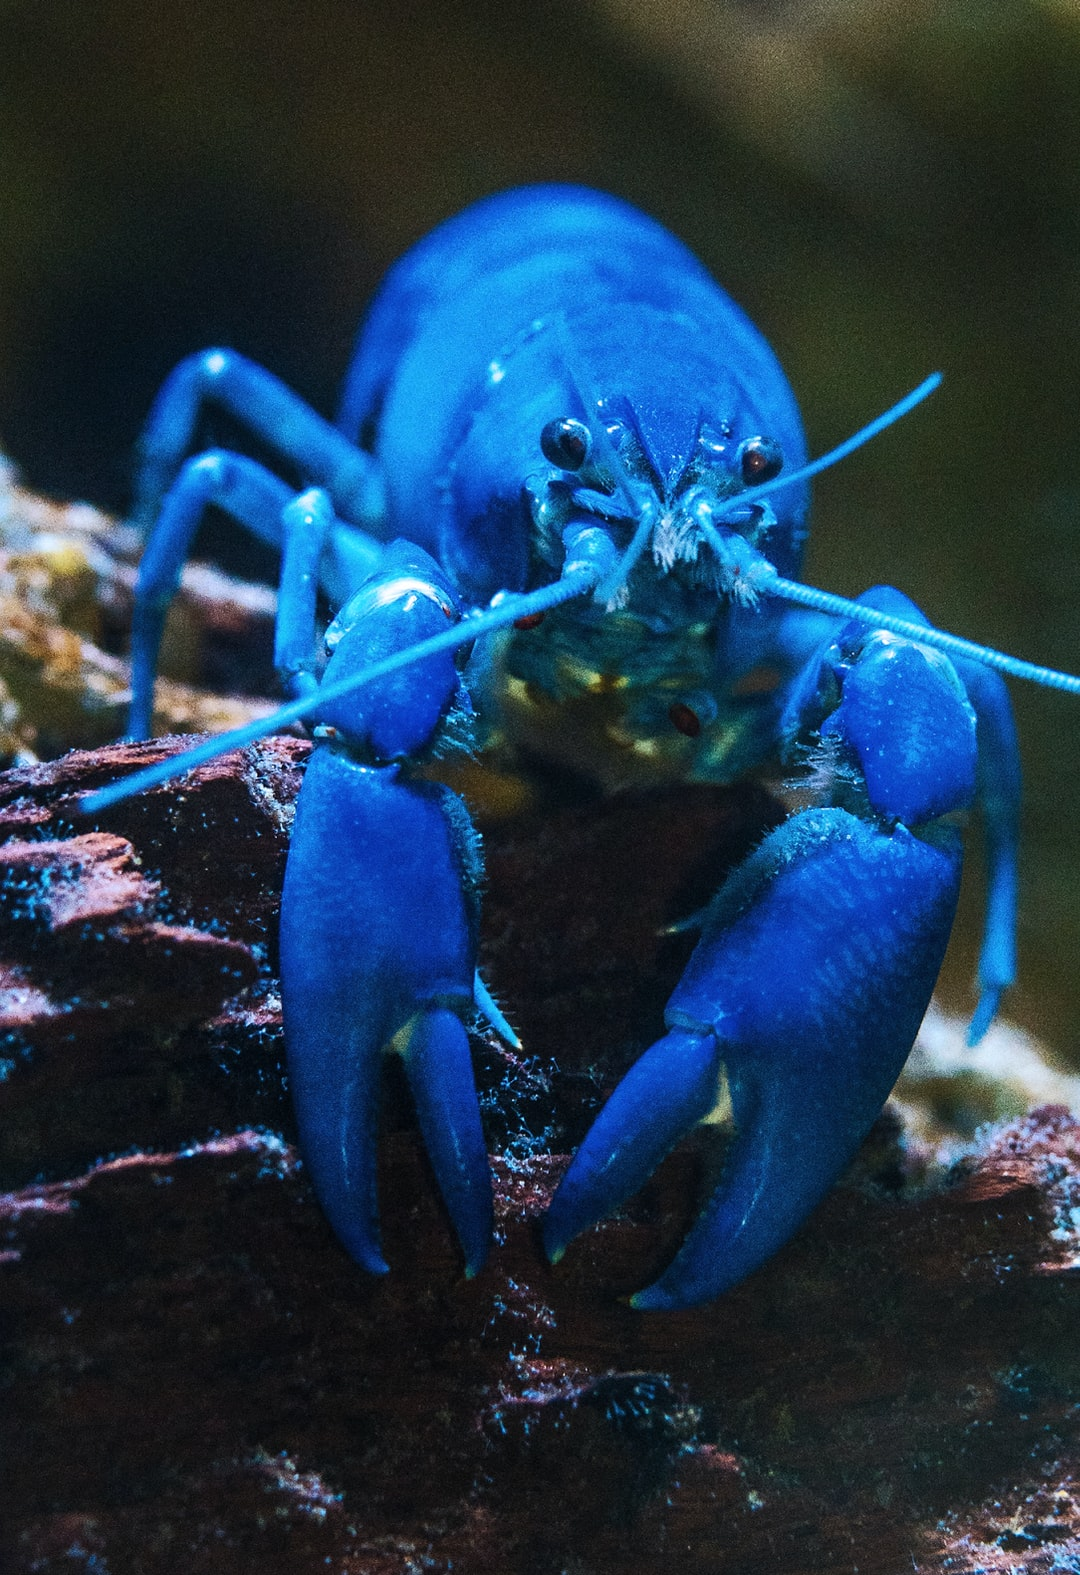 """Yes, the lobster really is that blue! A bit larger than a thumb. The zoological name of this lobster is Cherax destructor. The destructor bit is because they have a habit of burrowing into farm dam walls, and the tunnels get bigger and bigger, and finally the whole dam wall can wash away… hence """"destructor""""!"""